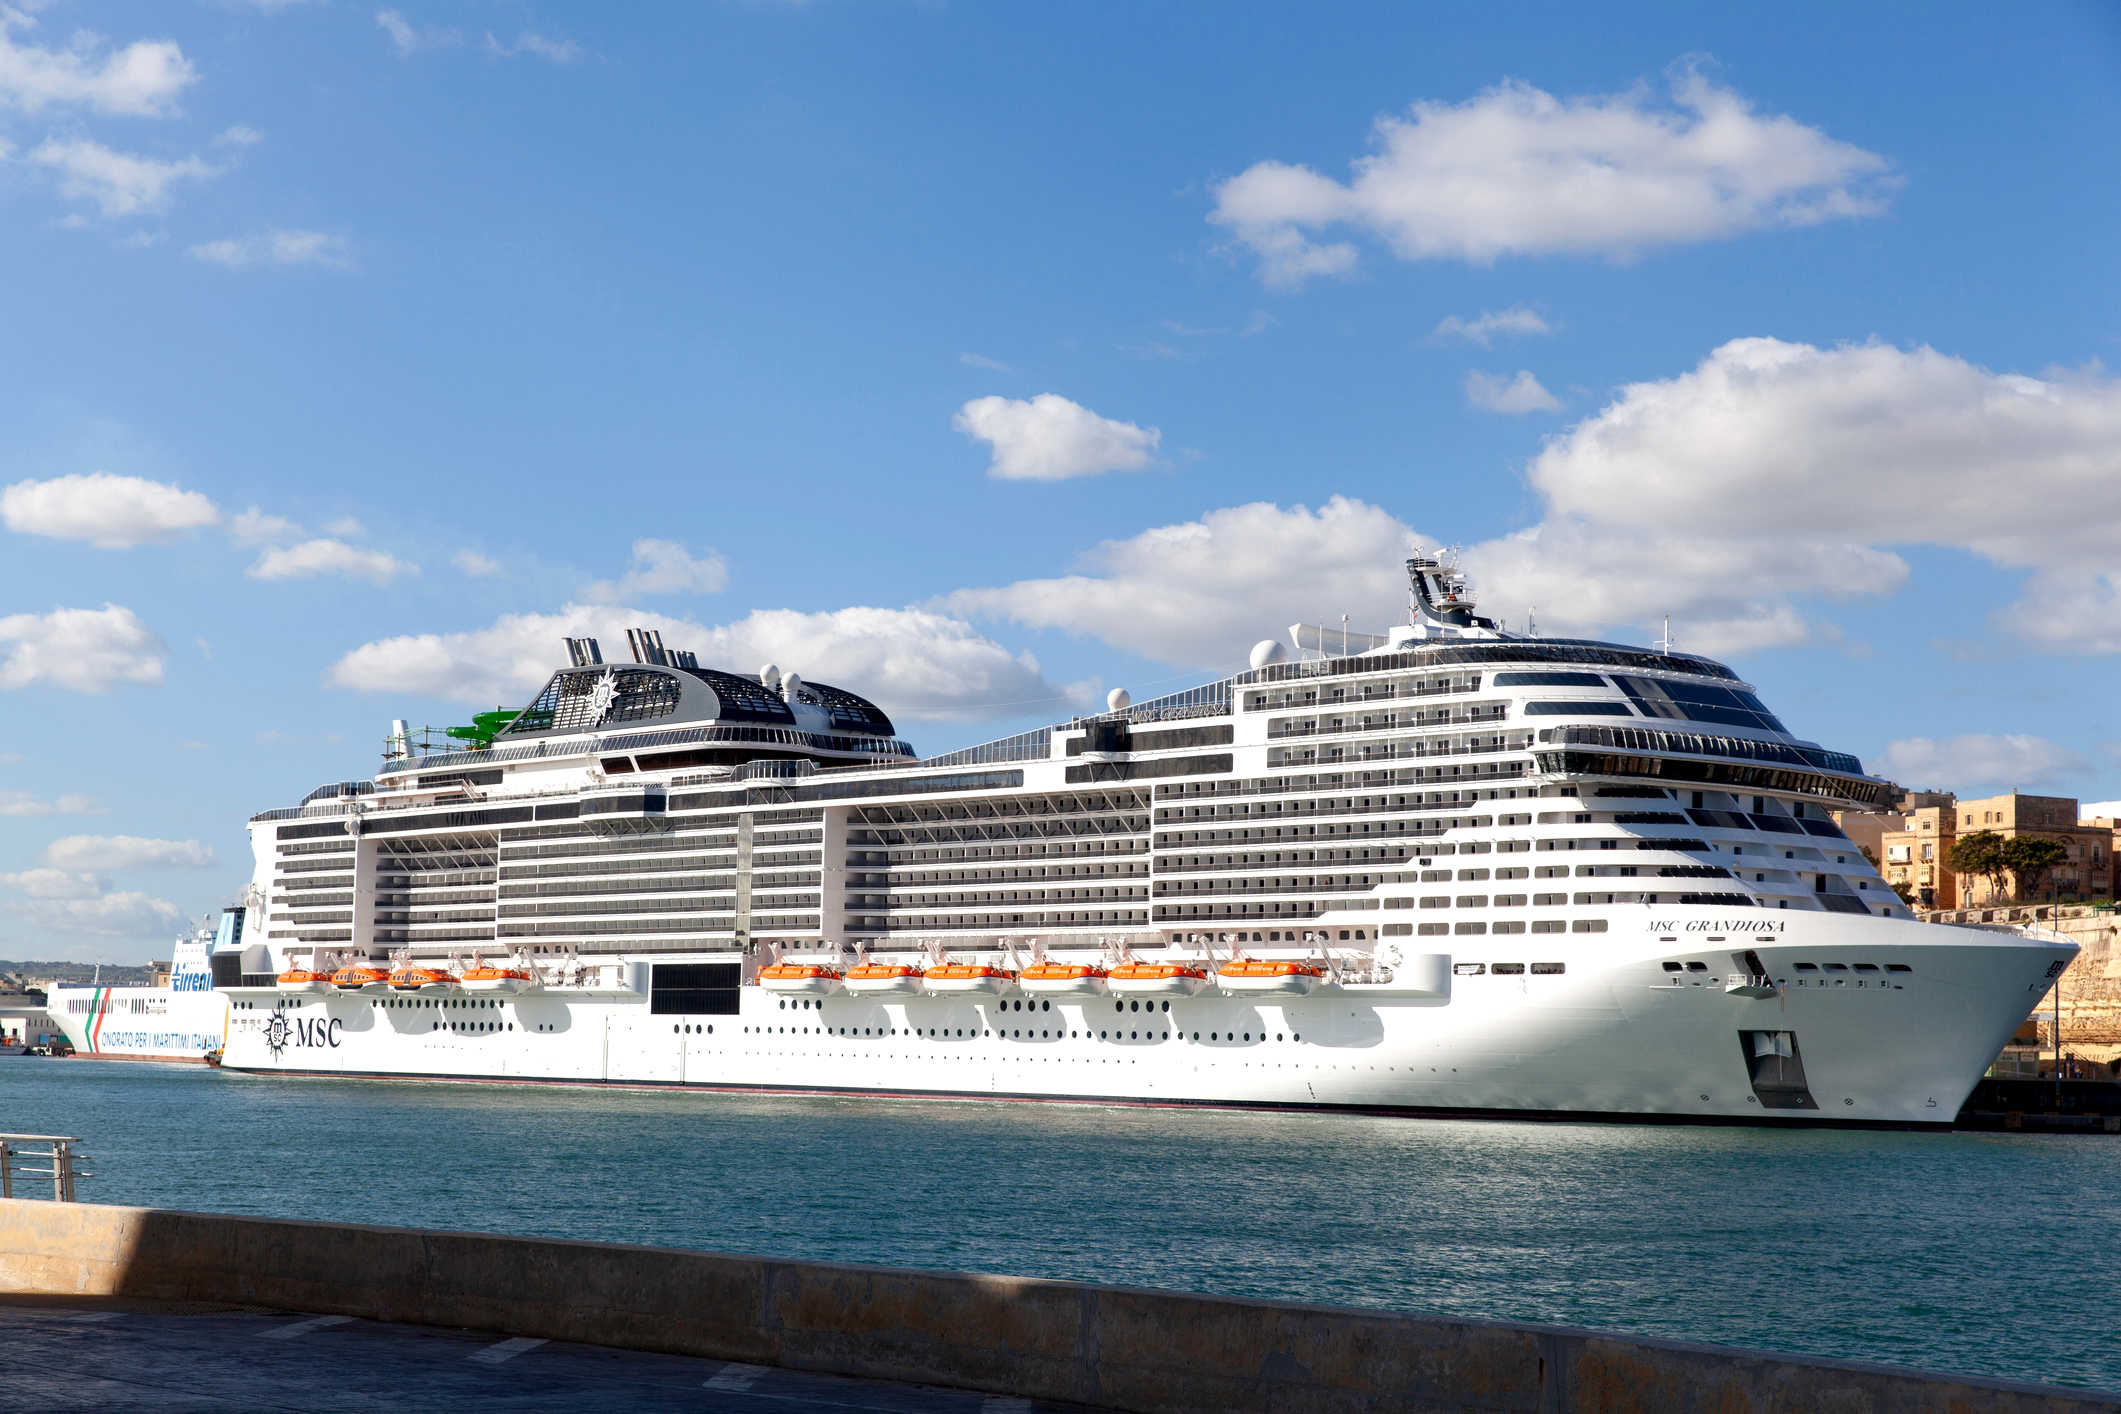 MSC Completes 5th Cruise As Company Sets Standard For Industry